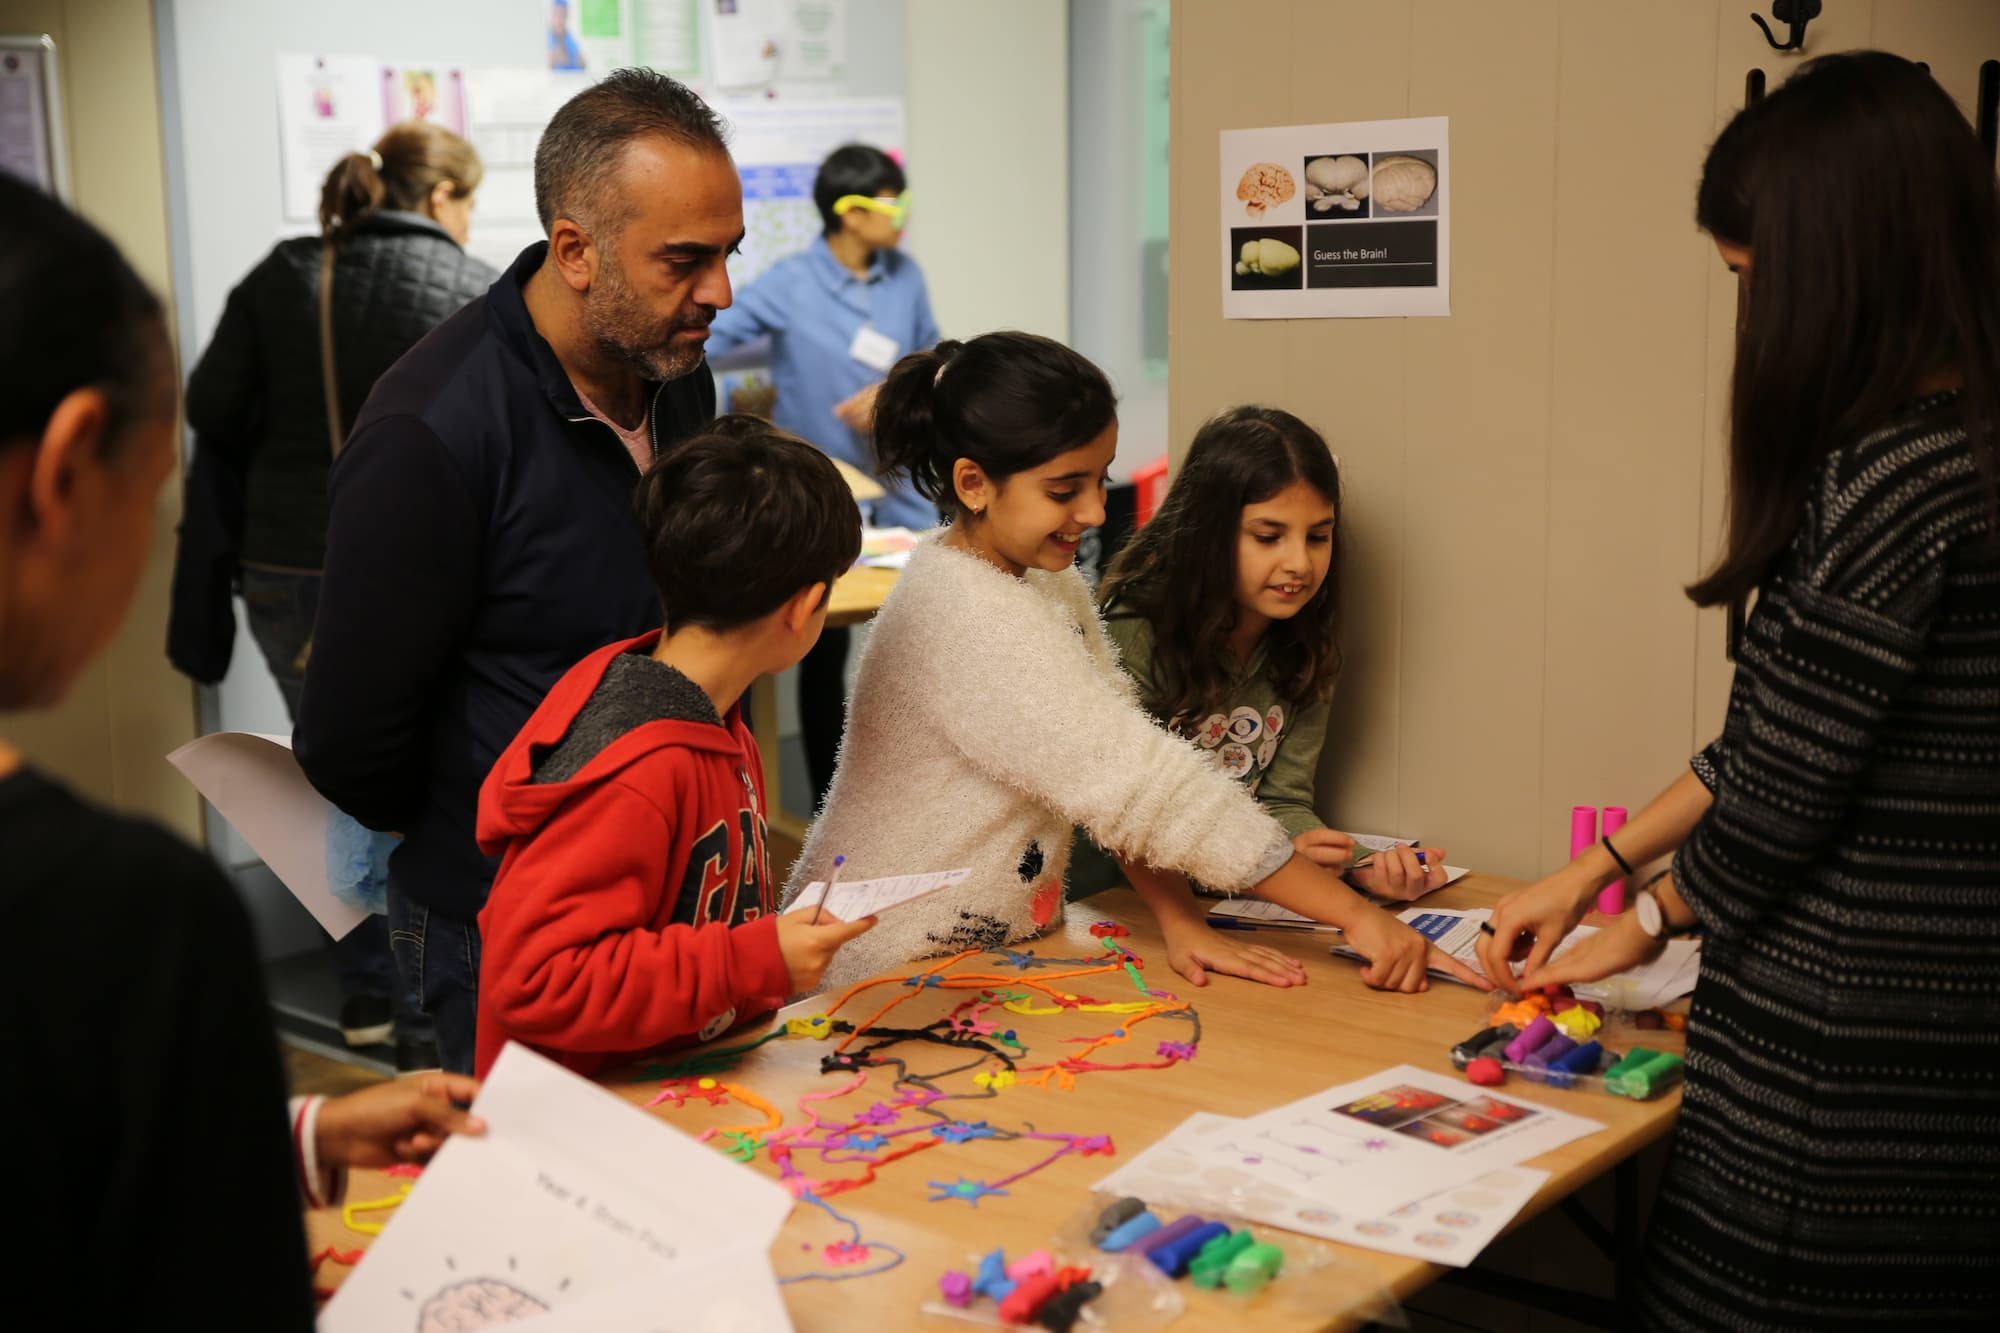 Four young people are standing around a table with a two adults looking at coloured pens and other crafting materials cleaners and having a chat.